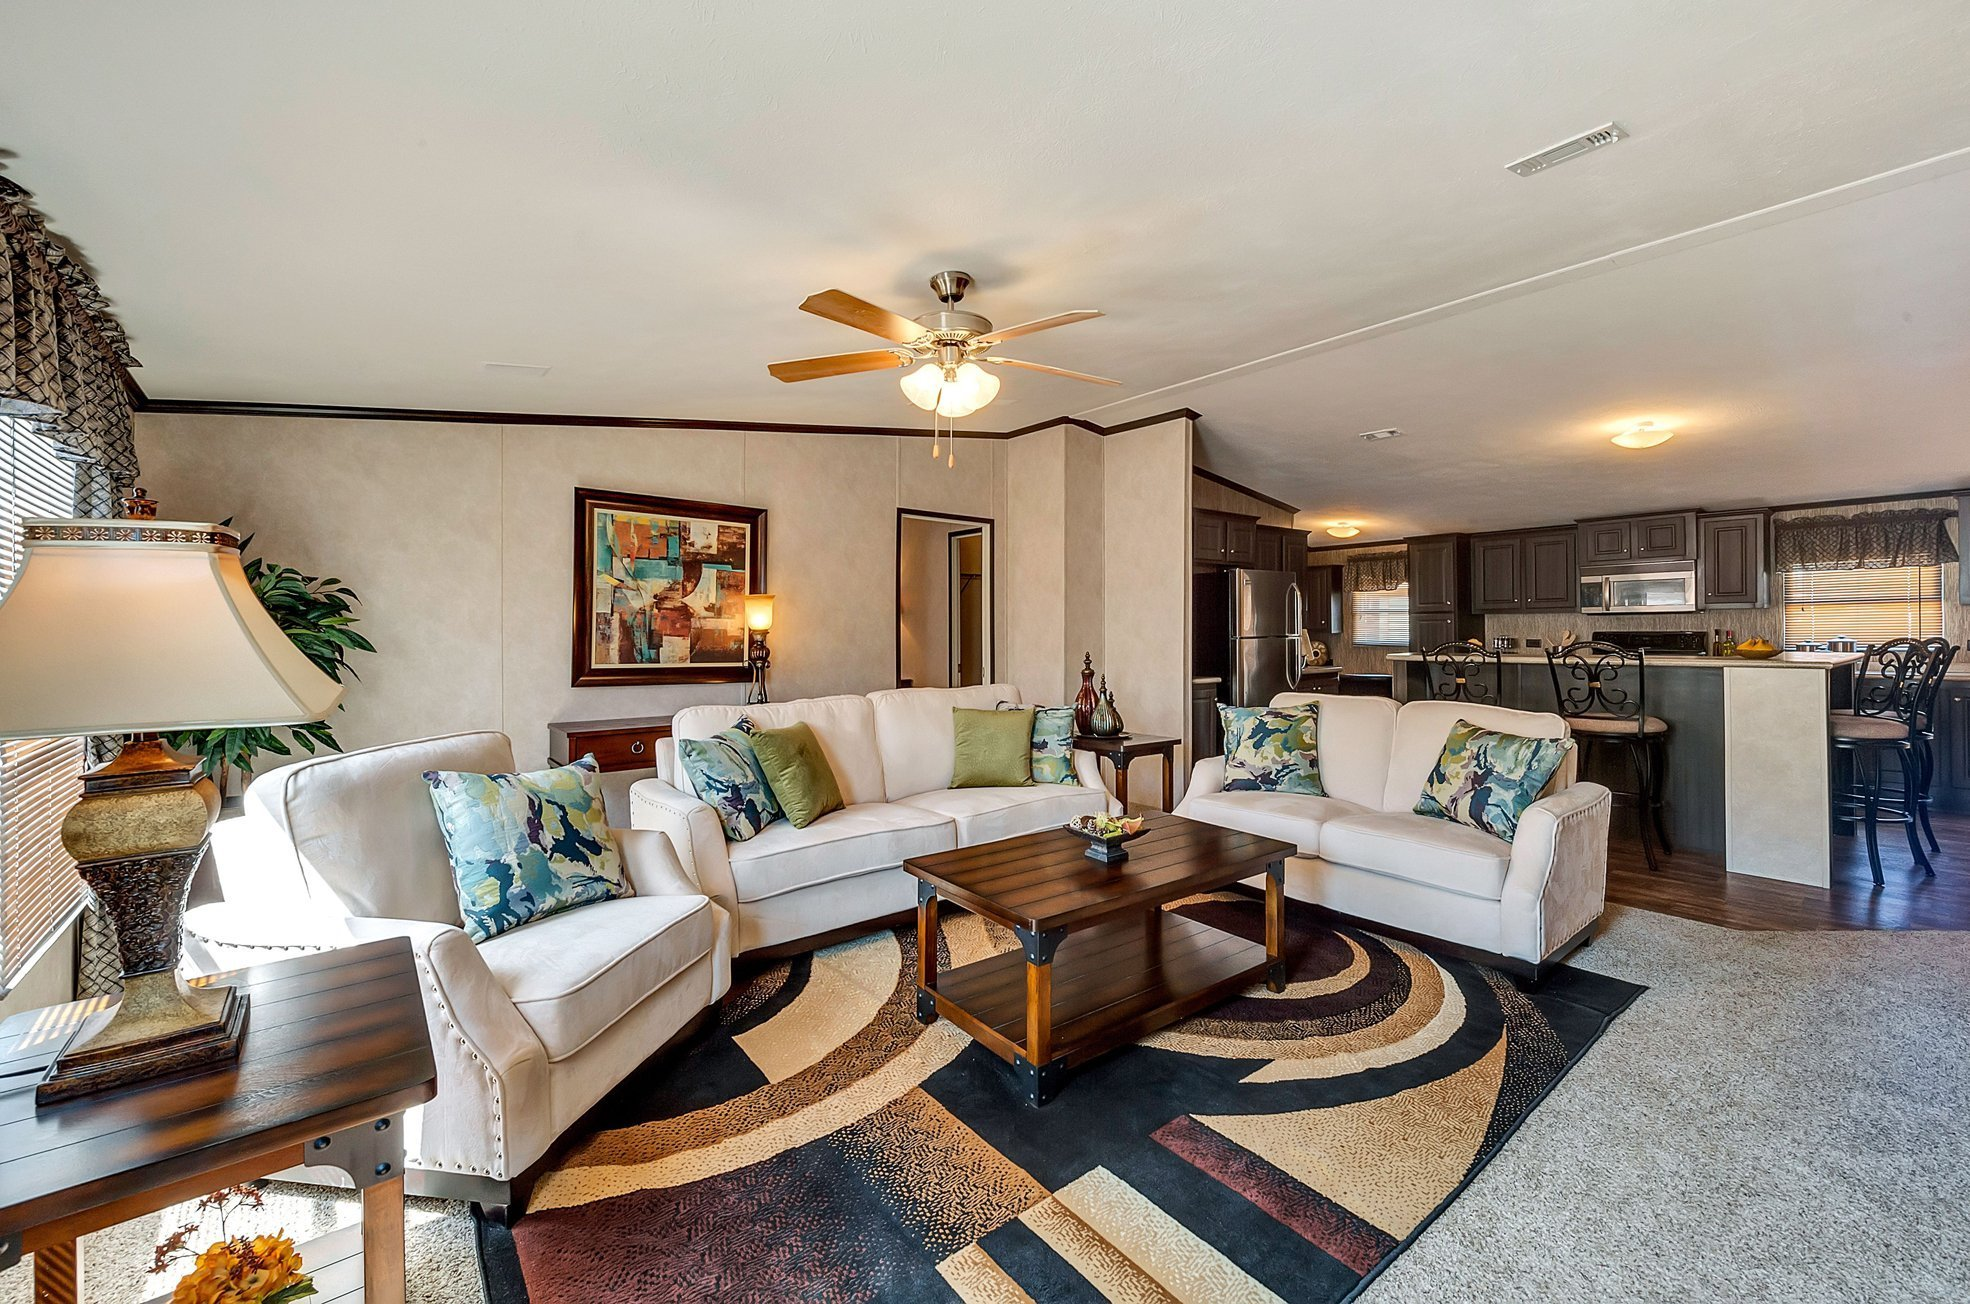 mobile home dealers in tyler texas with Portable Homes For Sale on Tribune highlights furthermore 3435396805 Malvern Pa moreover ULgfQewEIto moreover Log Cabin Double Wides in addition 712723.